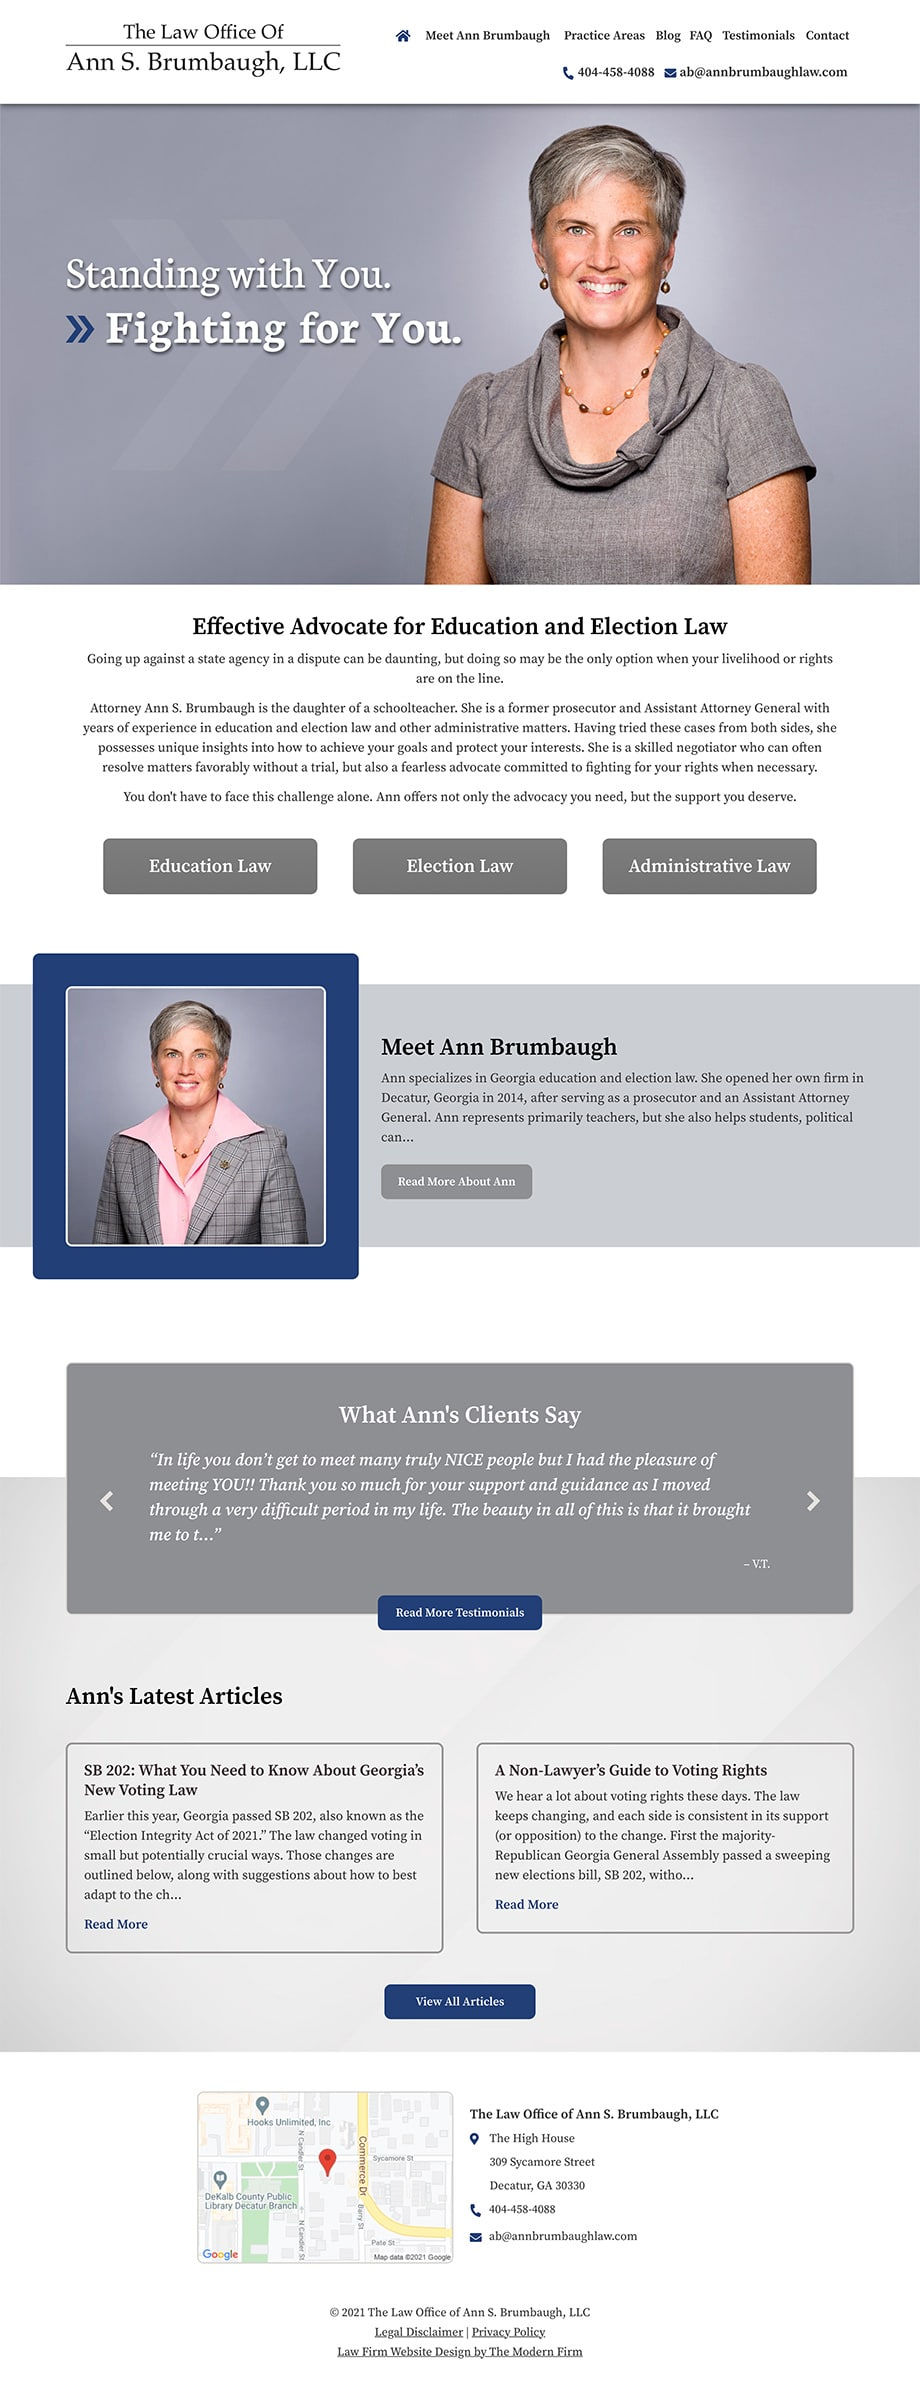 Law Firm Website Design for The Law Office of Ann S. Brumbaugh, LLC